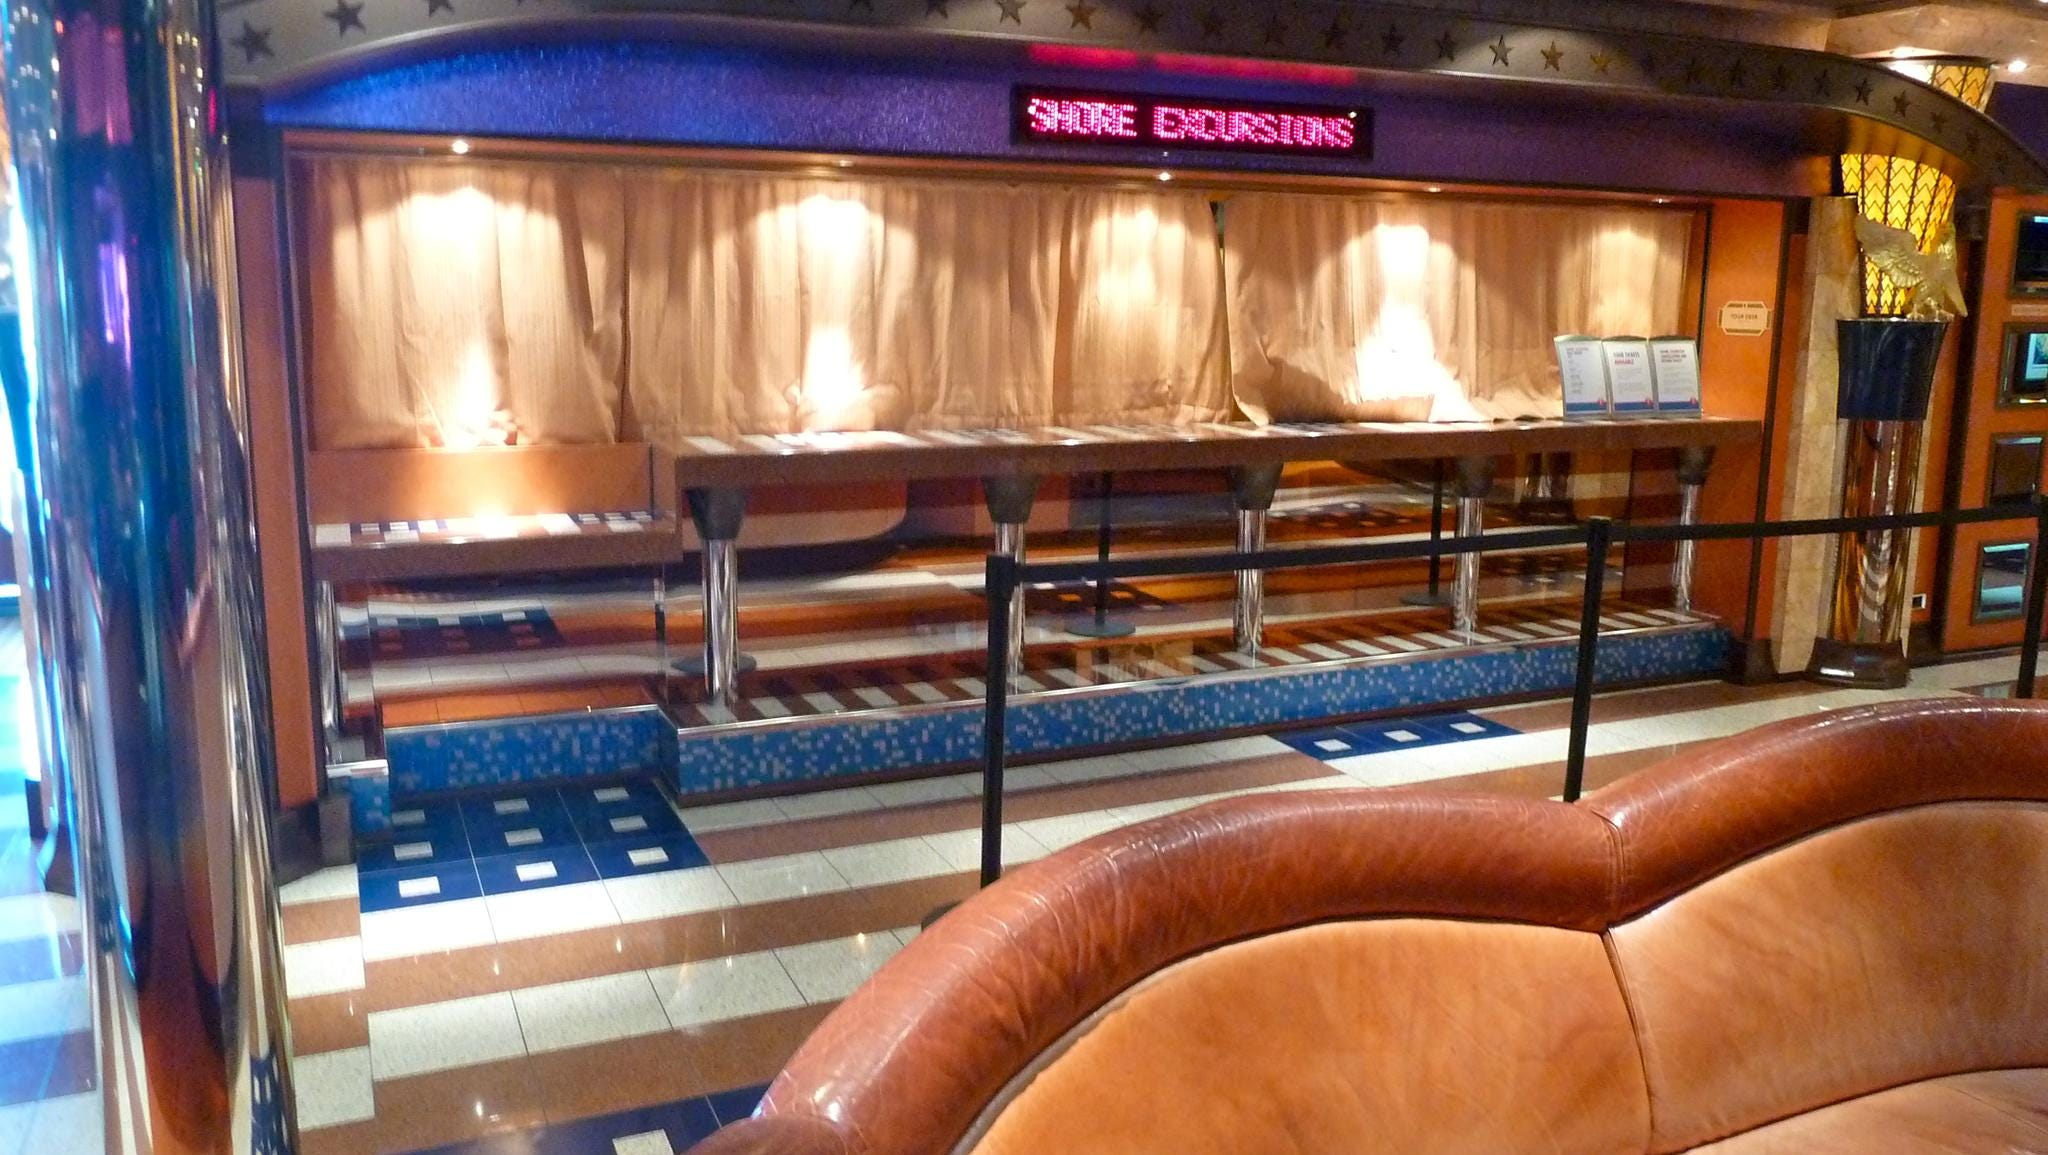 Across from Guest Services, there is the Shore Excursions desk.